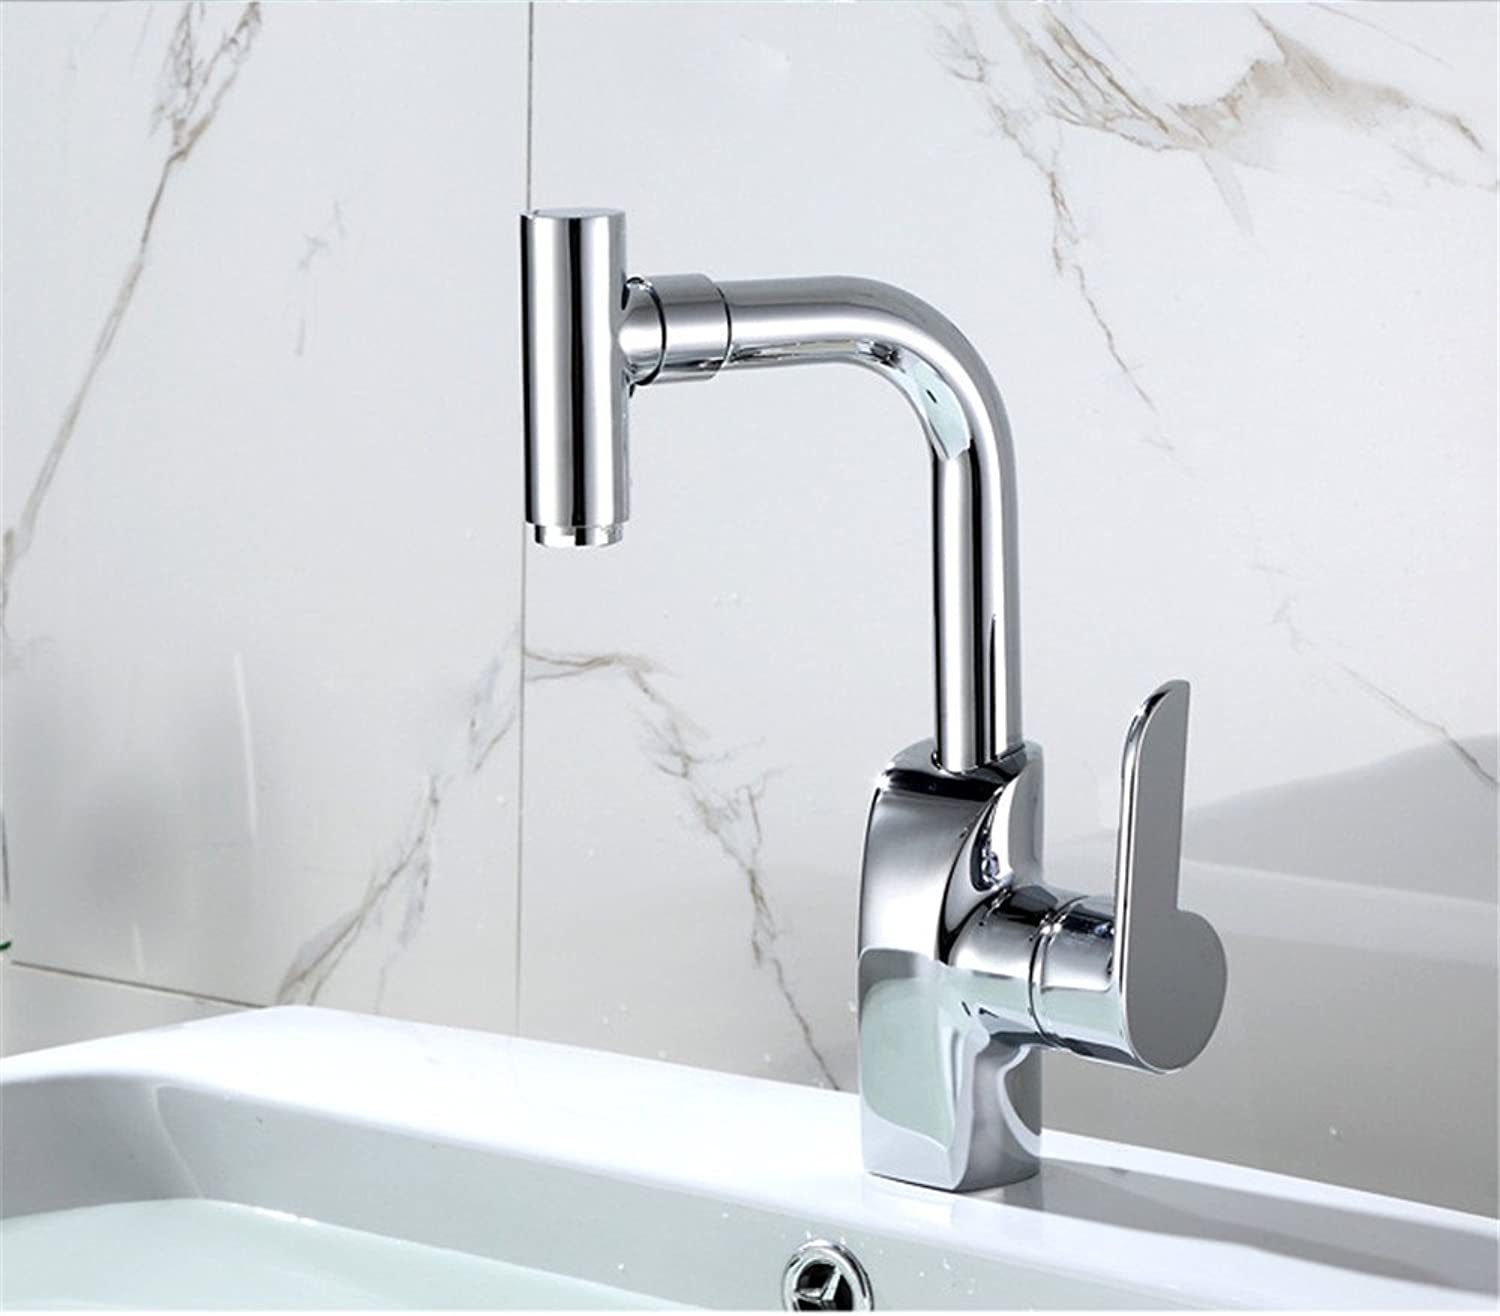 Lalaky Taps Faucet Kitchen Mixer Sink Waterfall Bathroom Mixer Basin Mixer Tap for Kitchen Bathroom and Washroom Vintage Chrome Stainless Steel Pure Copper